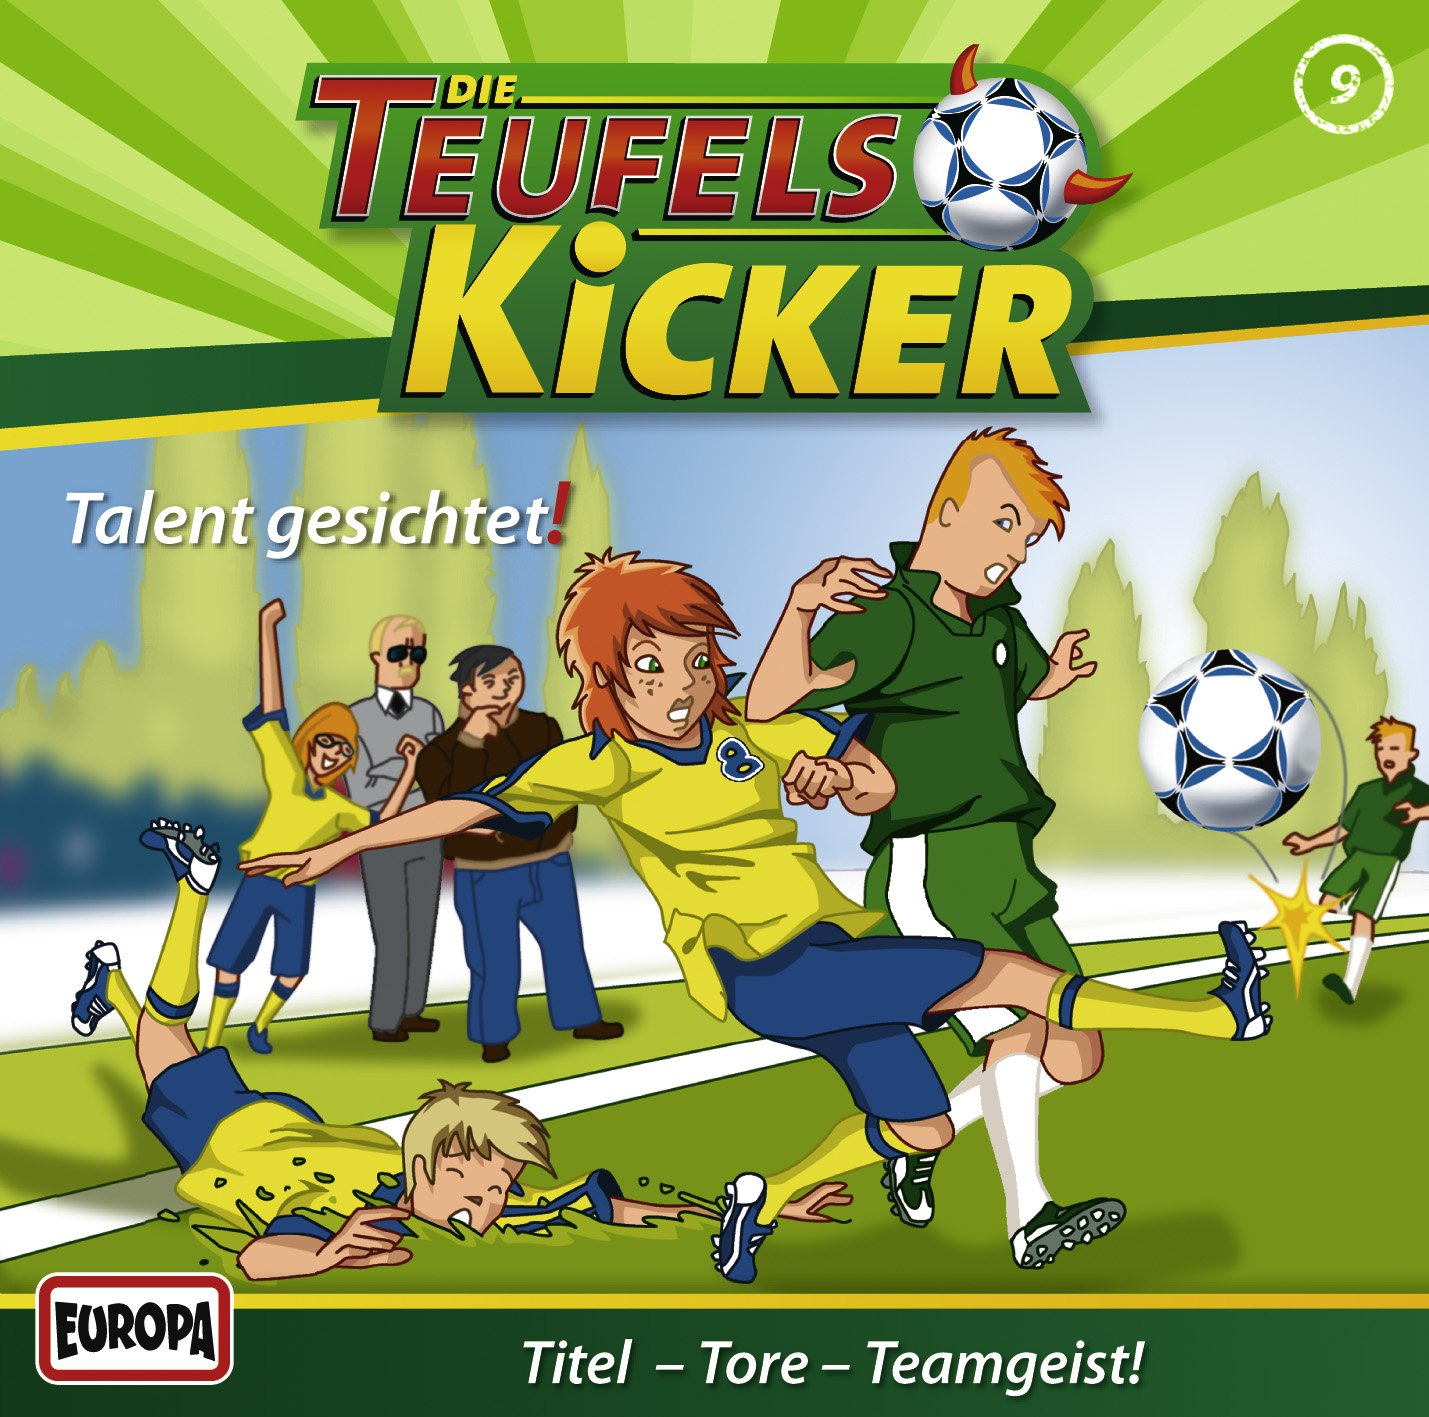 Teufelskicker  - Talent gesichtet!